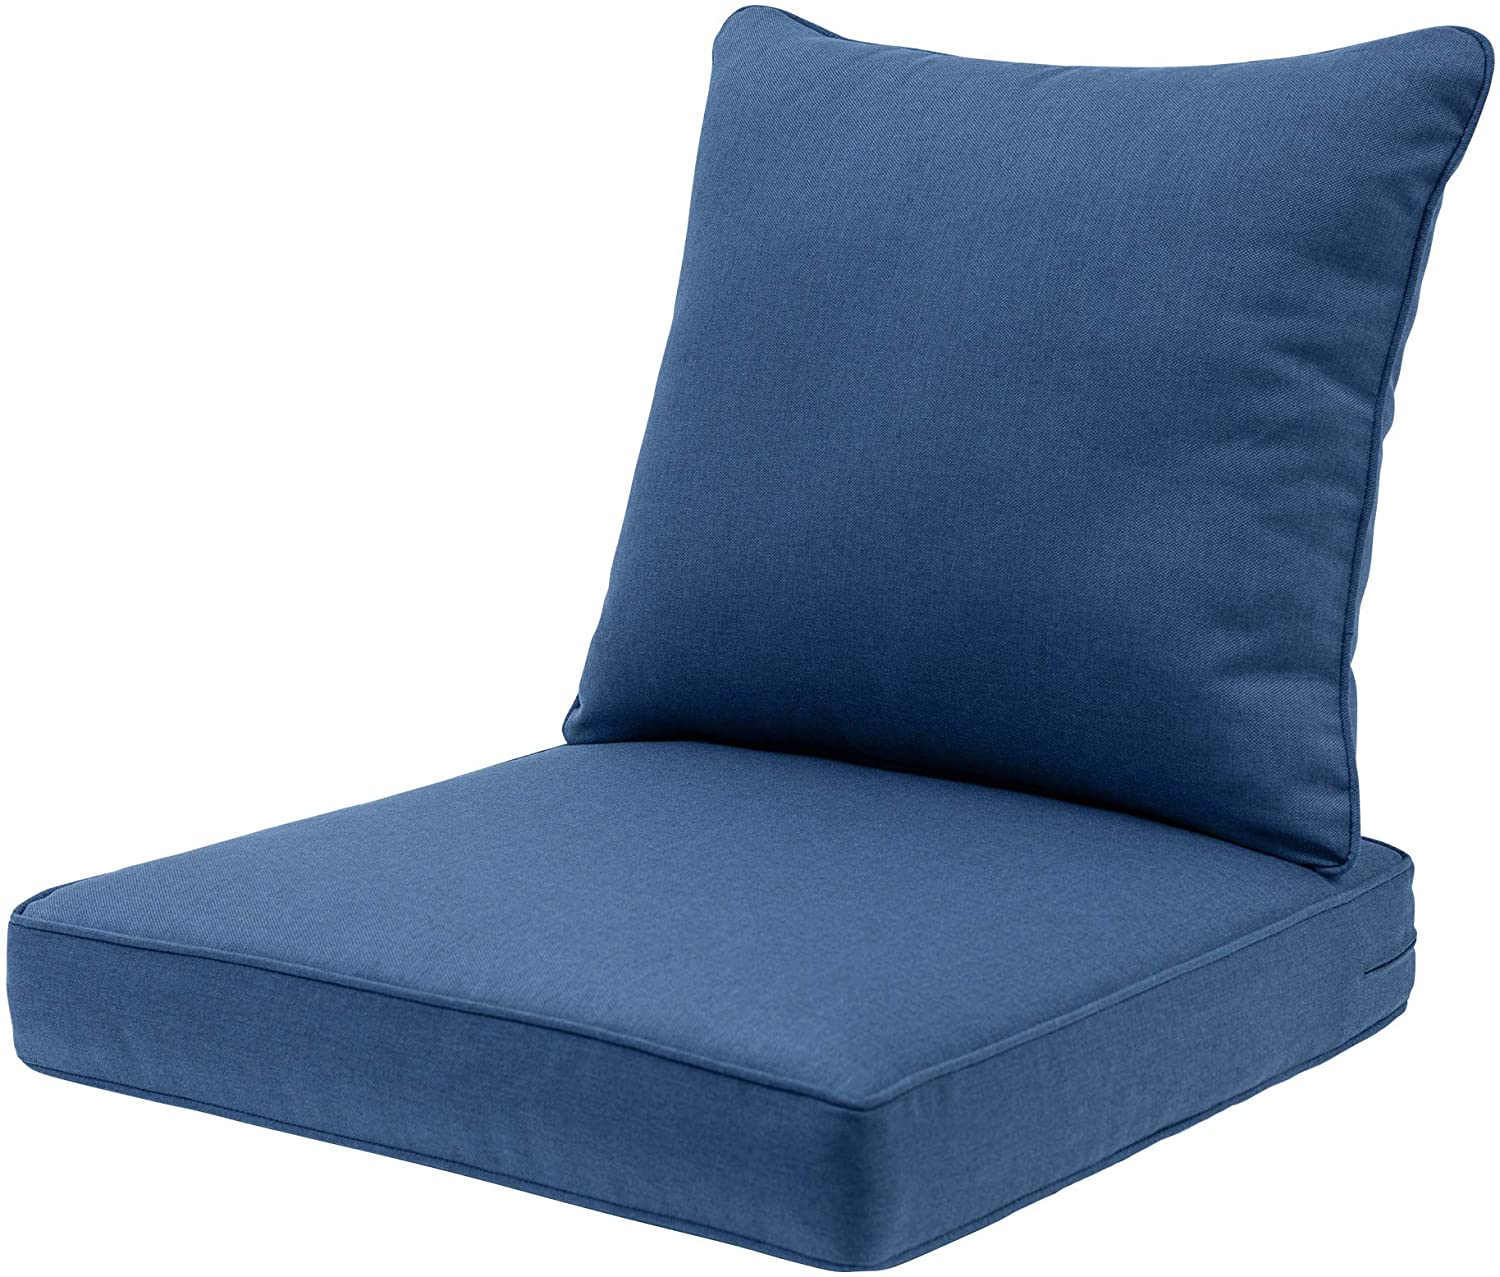 QILLOWAY Outdoor/Indoor Deep Seat Chair Cushions Set,All Weather Large Size Replacement Cushion for Patio Furniture. (Blue/Indigo)